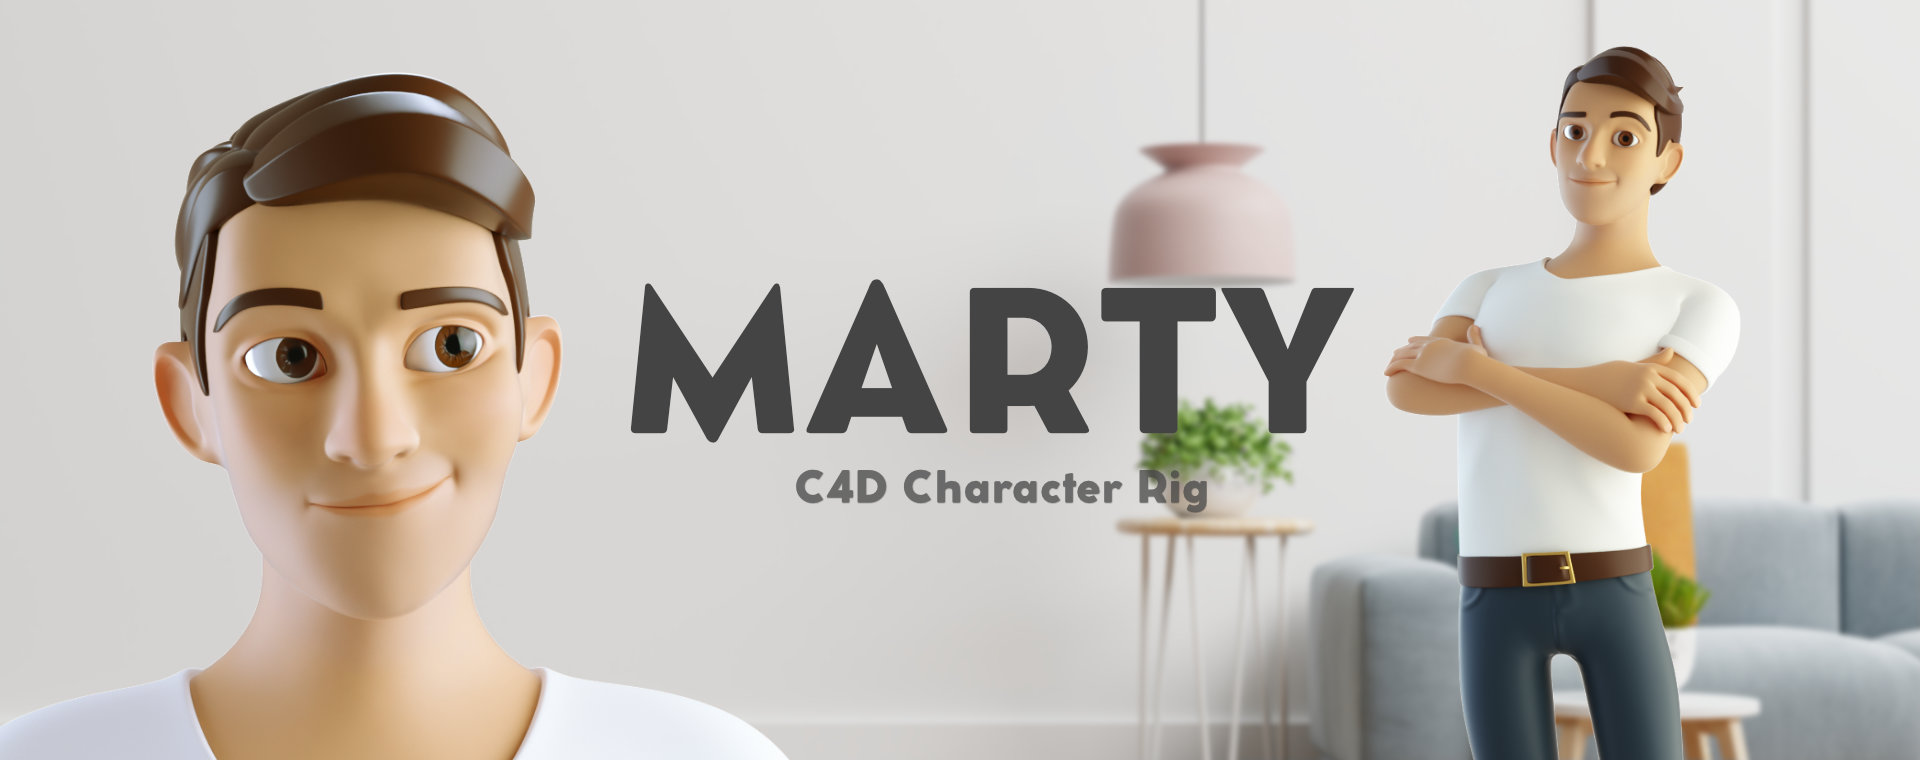 cinema 4d c4d rigged character male cartoon stylized